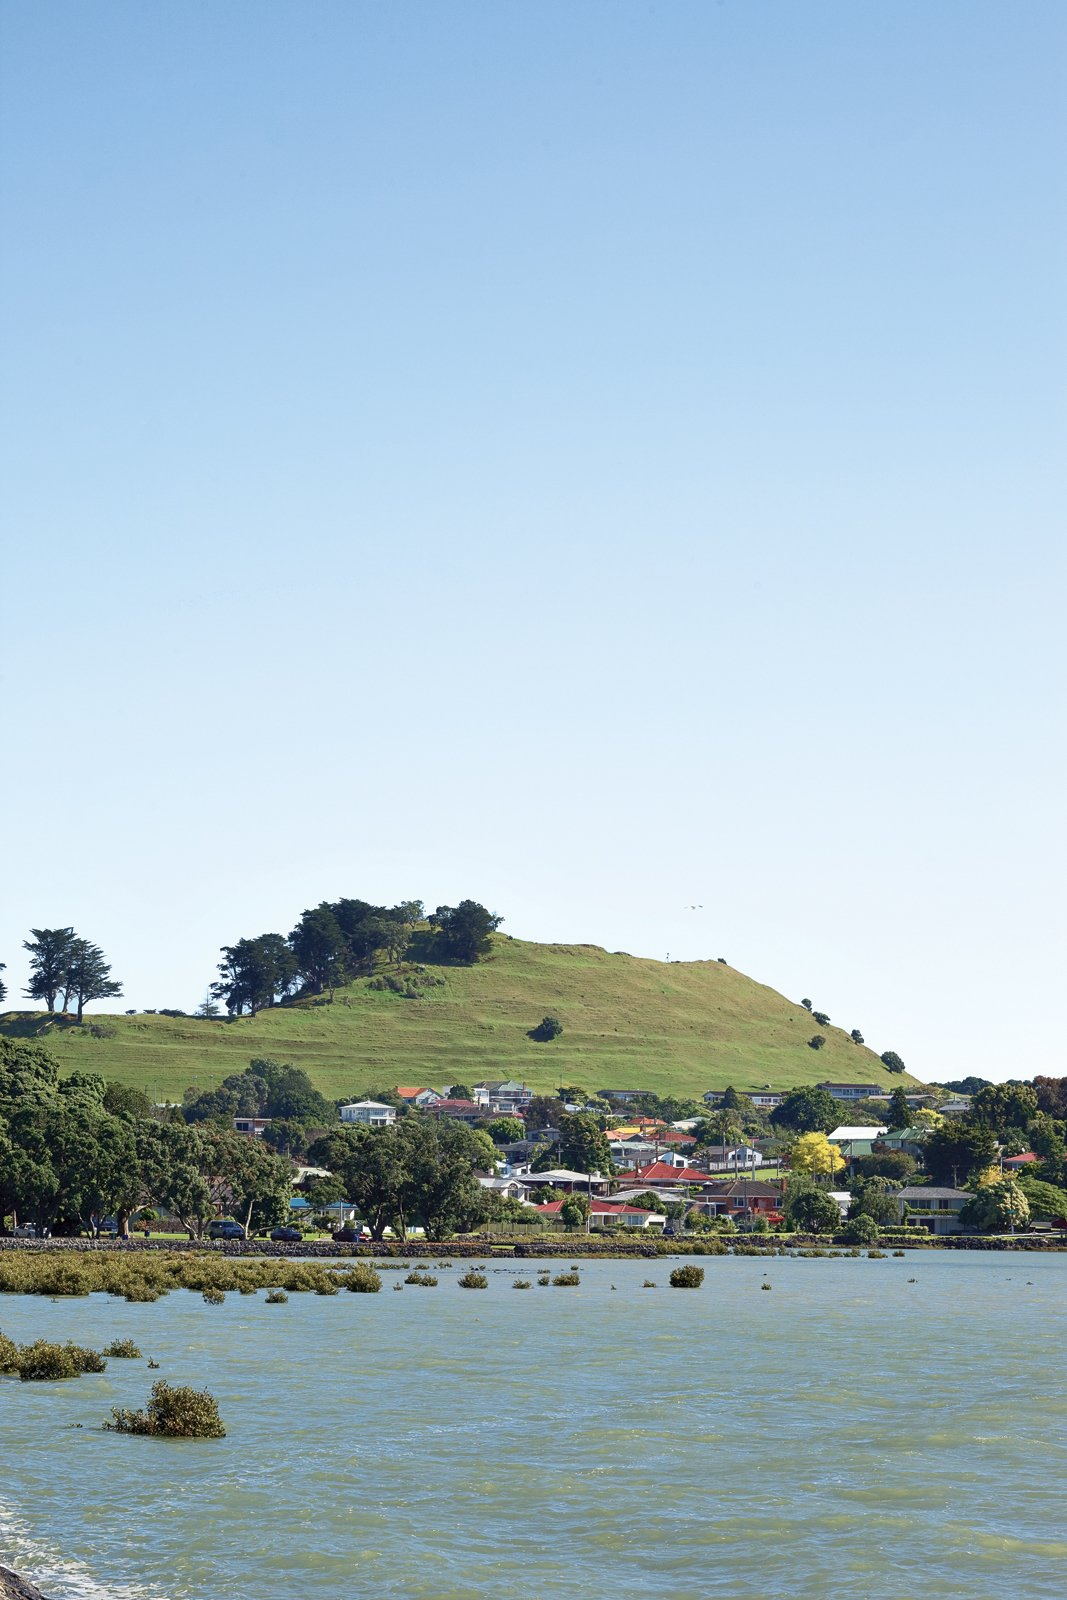 Auckland's Mangere Mountain is a dormant volcano that rises above the shore of the Manukau Harbor. It was once a site of strategic importance to early Maori tribes, and development is now prohibited on its cone. The Great Compression - Photo 1 of 11